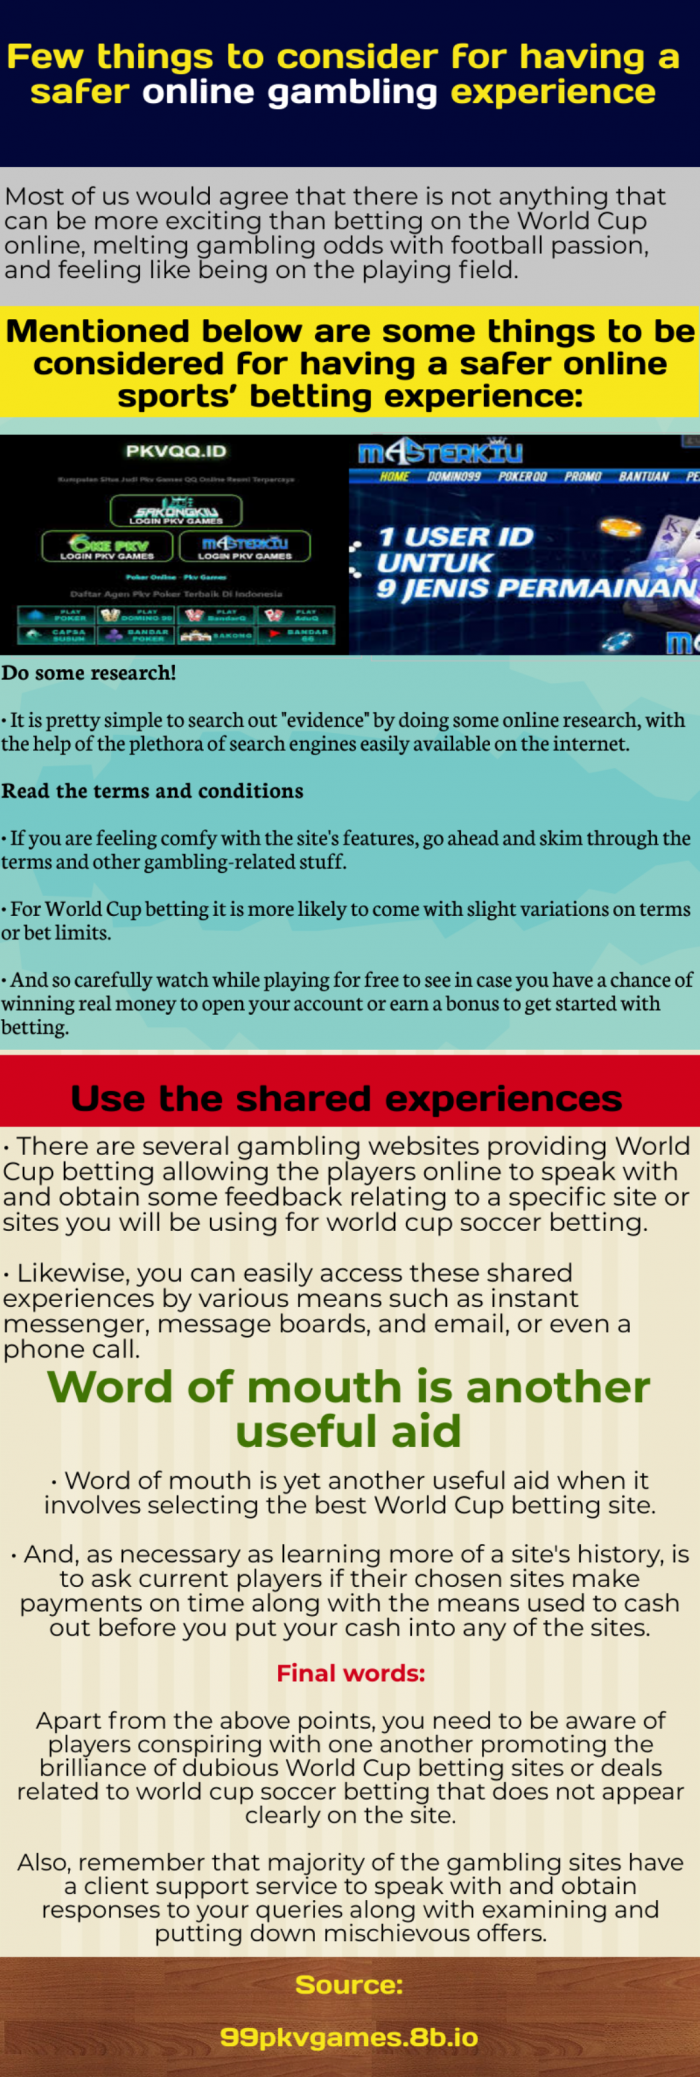 A quick look on how to gamble online more safely